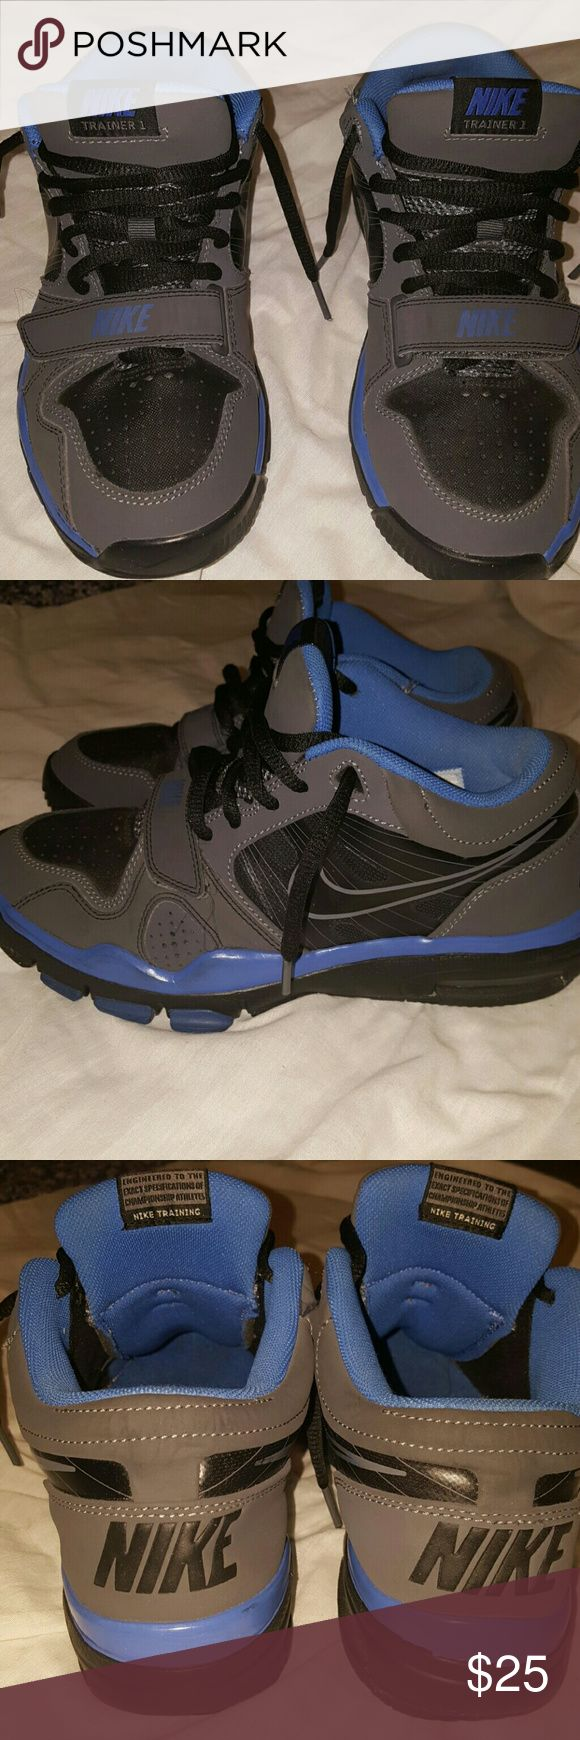 Nike Trainer 1 Worn twice, without box. Great condition. 5.5 in boys (big kids) Nike Shoes Sneakers